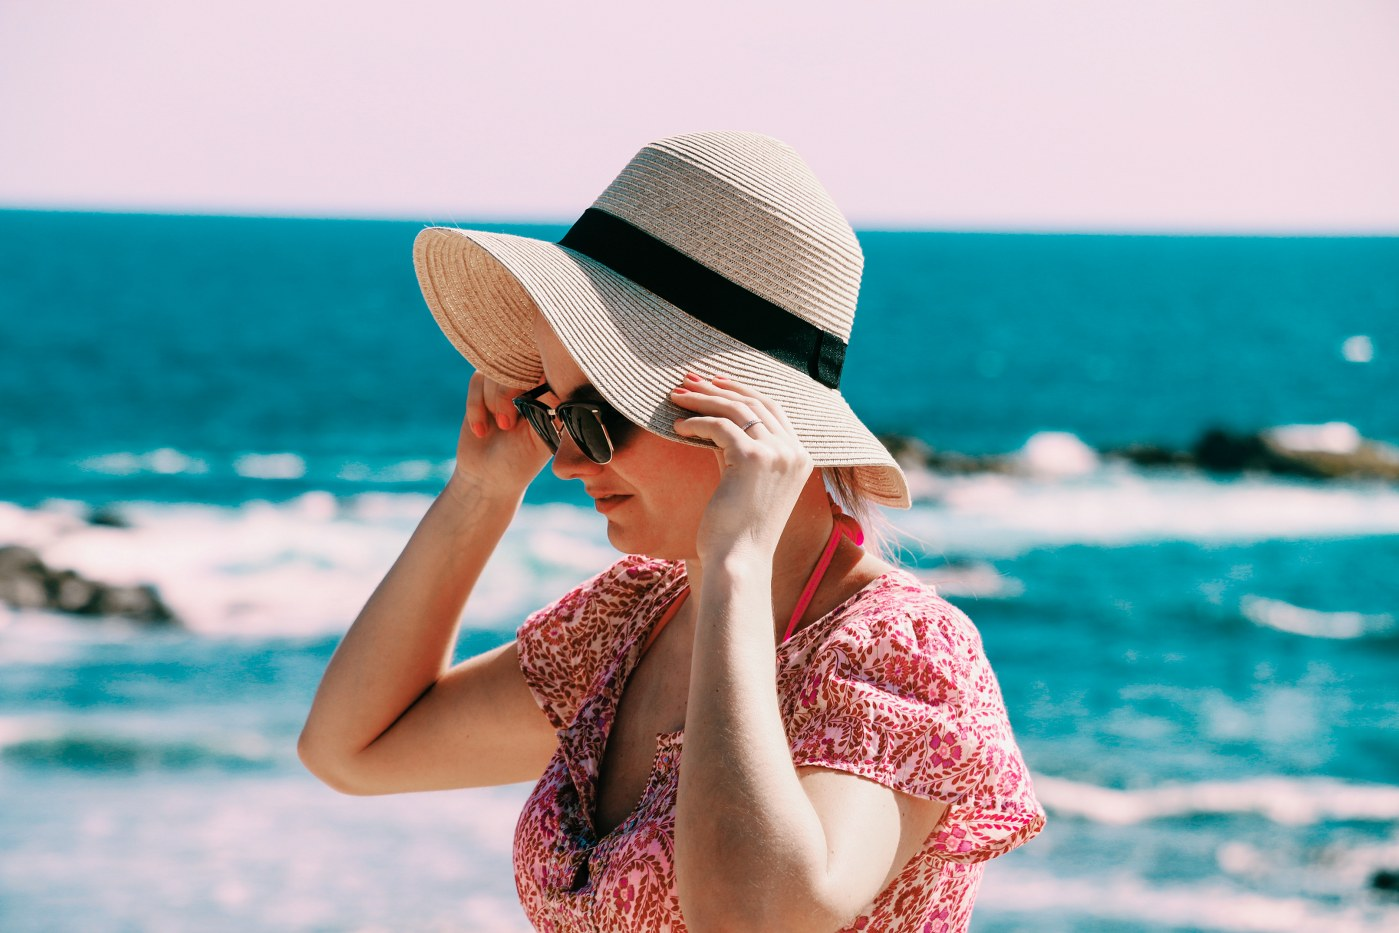 singles holidays over 40 - woman in sunhat